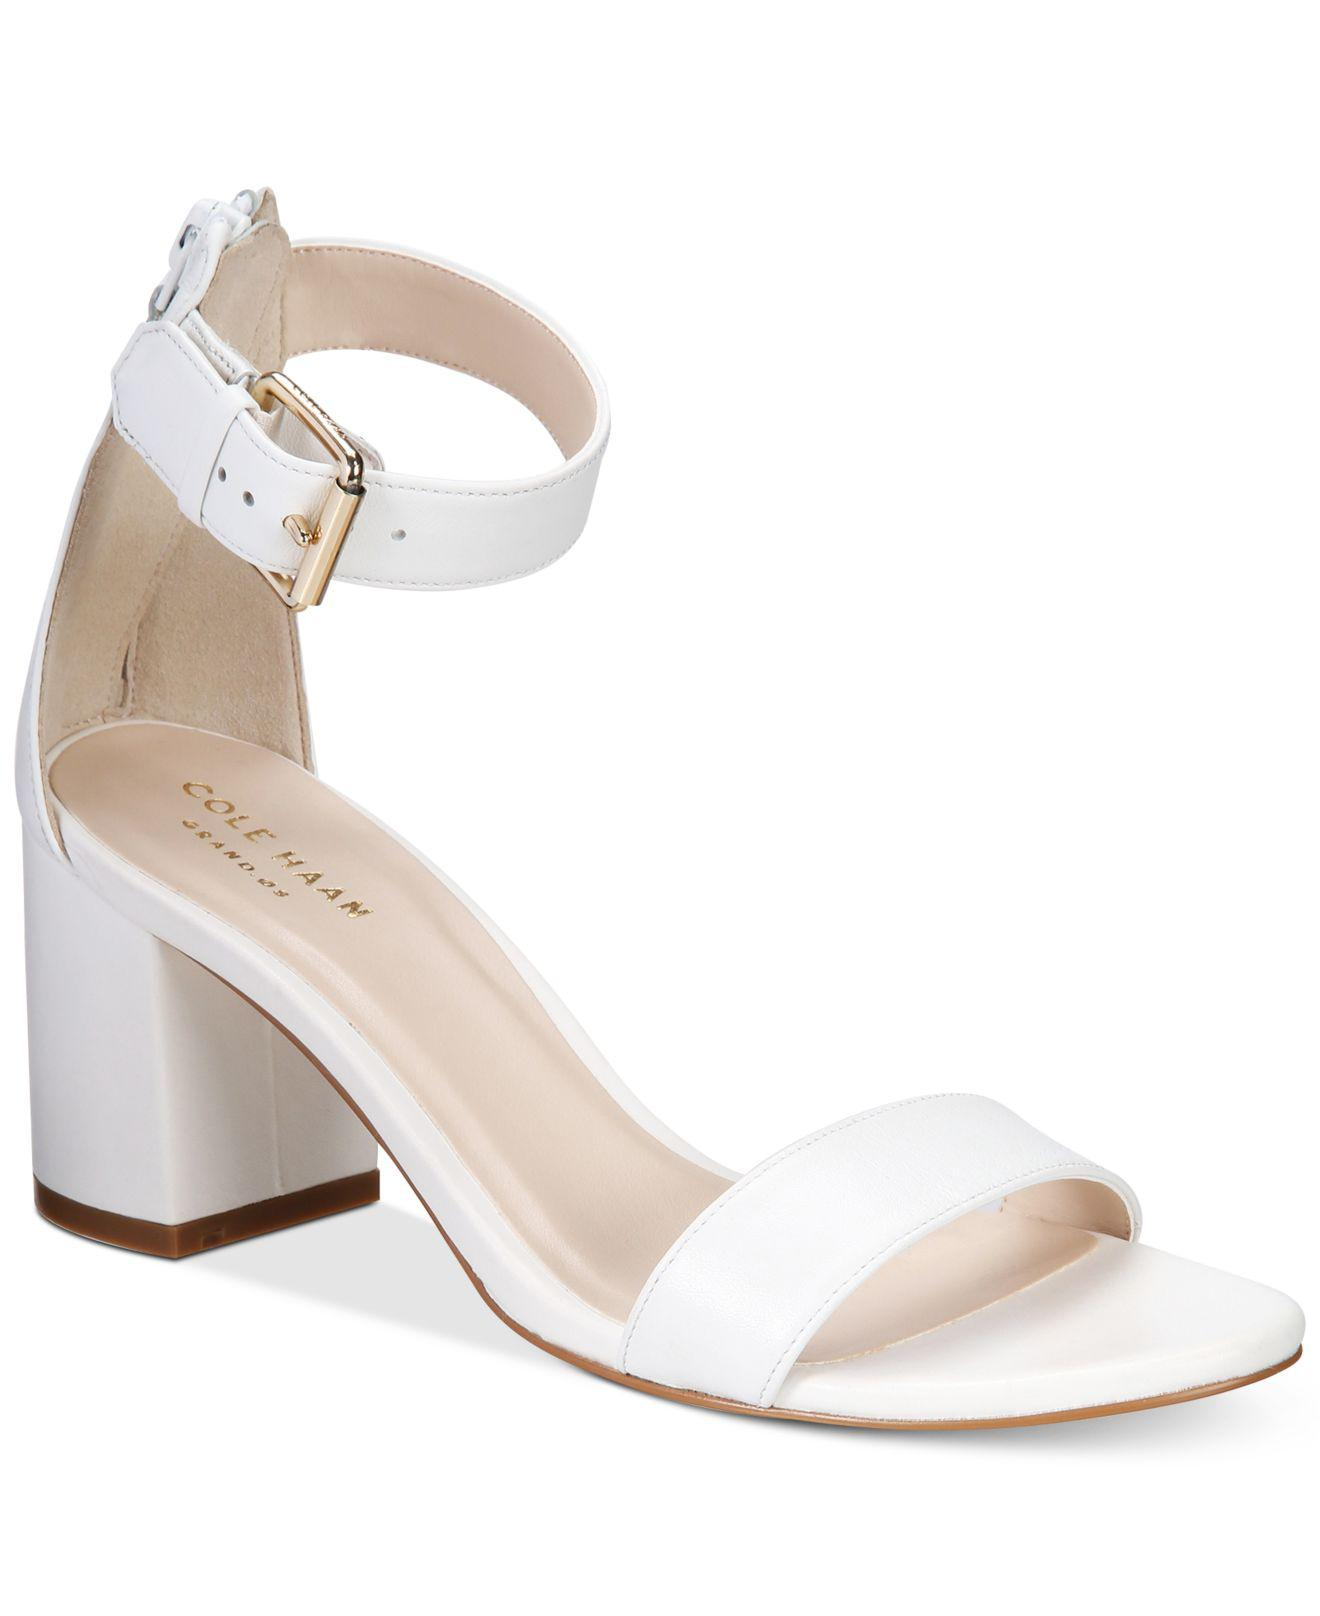 ded85152514 Lyst - Cole Haan Clarette Sandals in White